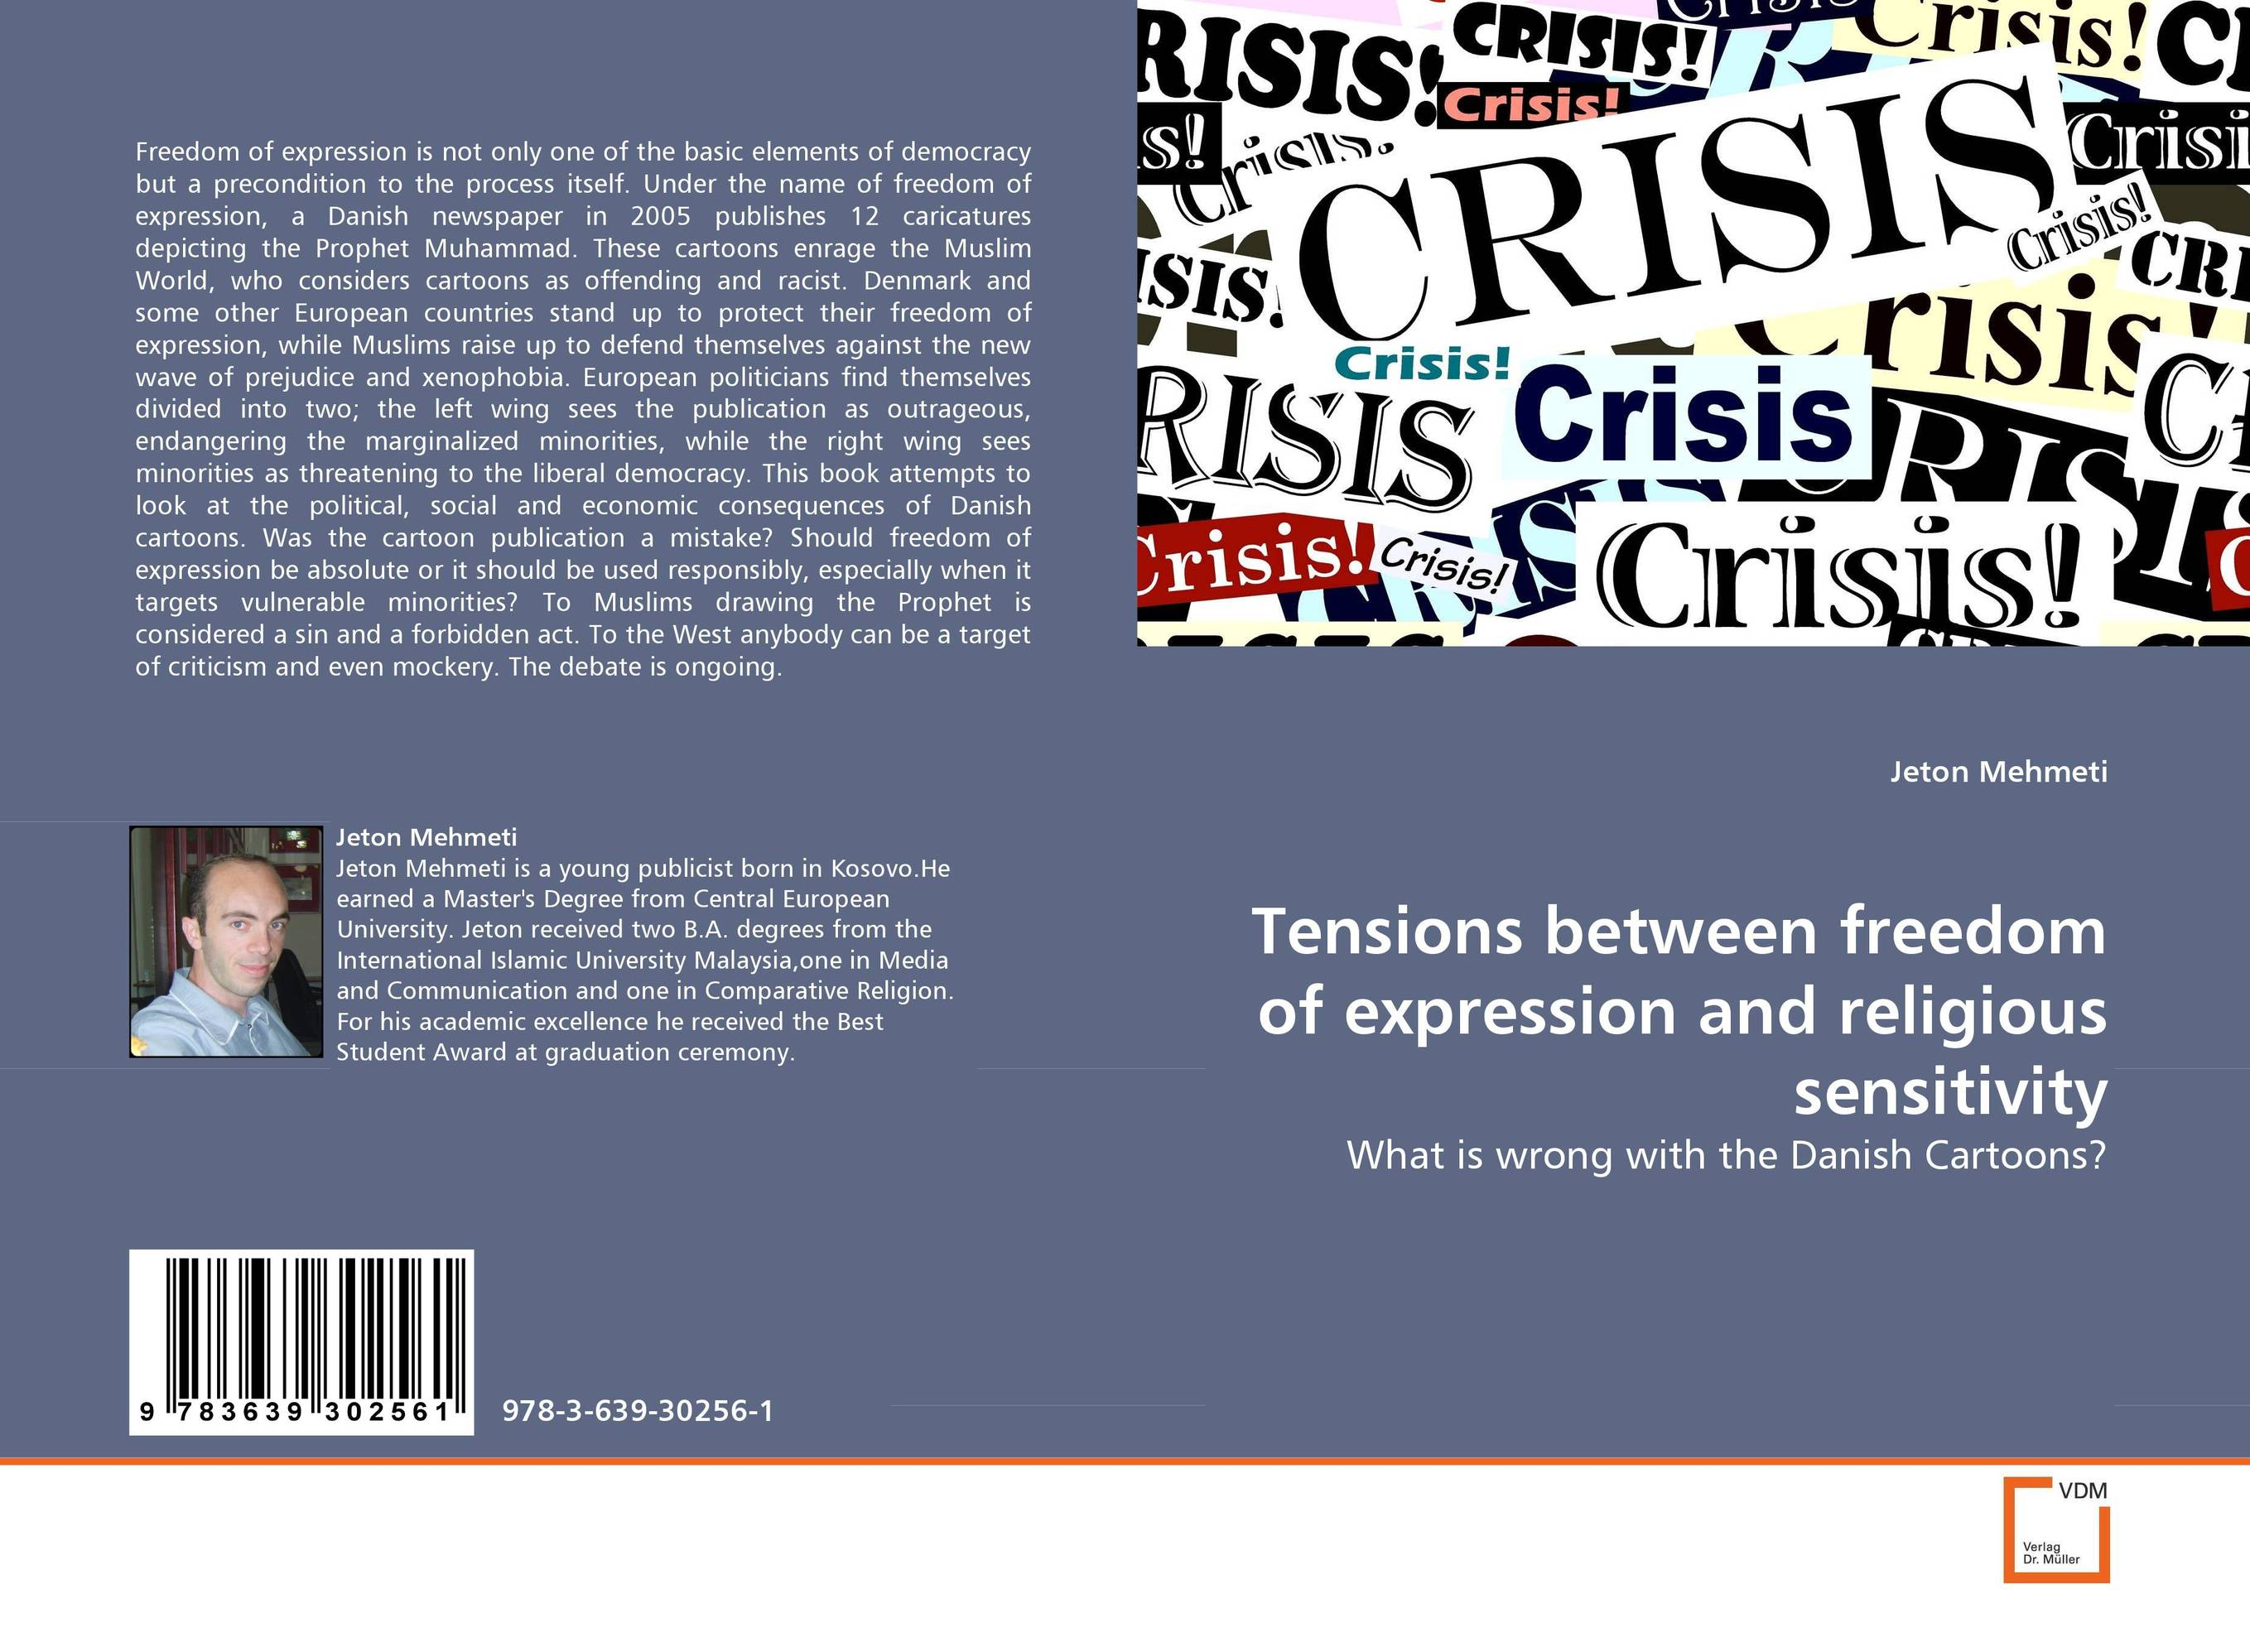 Tensions between freedom of expression and religious sensitivity shari a and muslim minorities